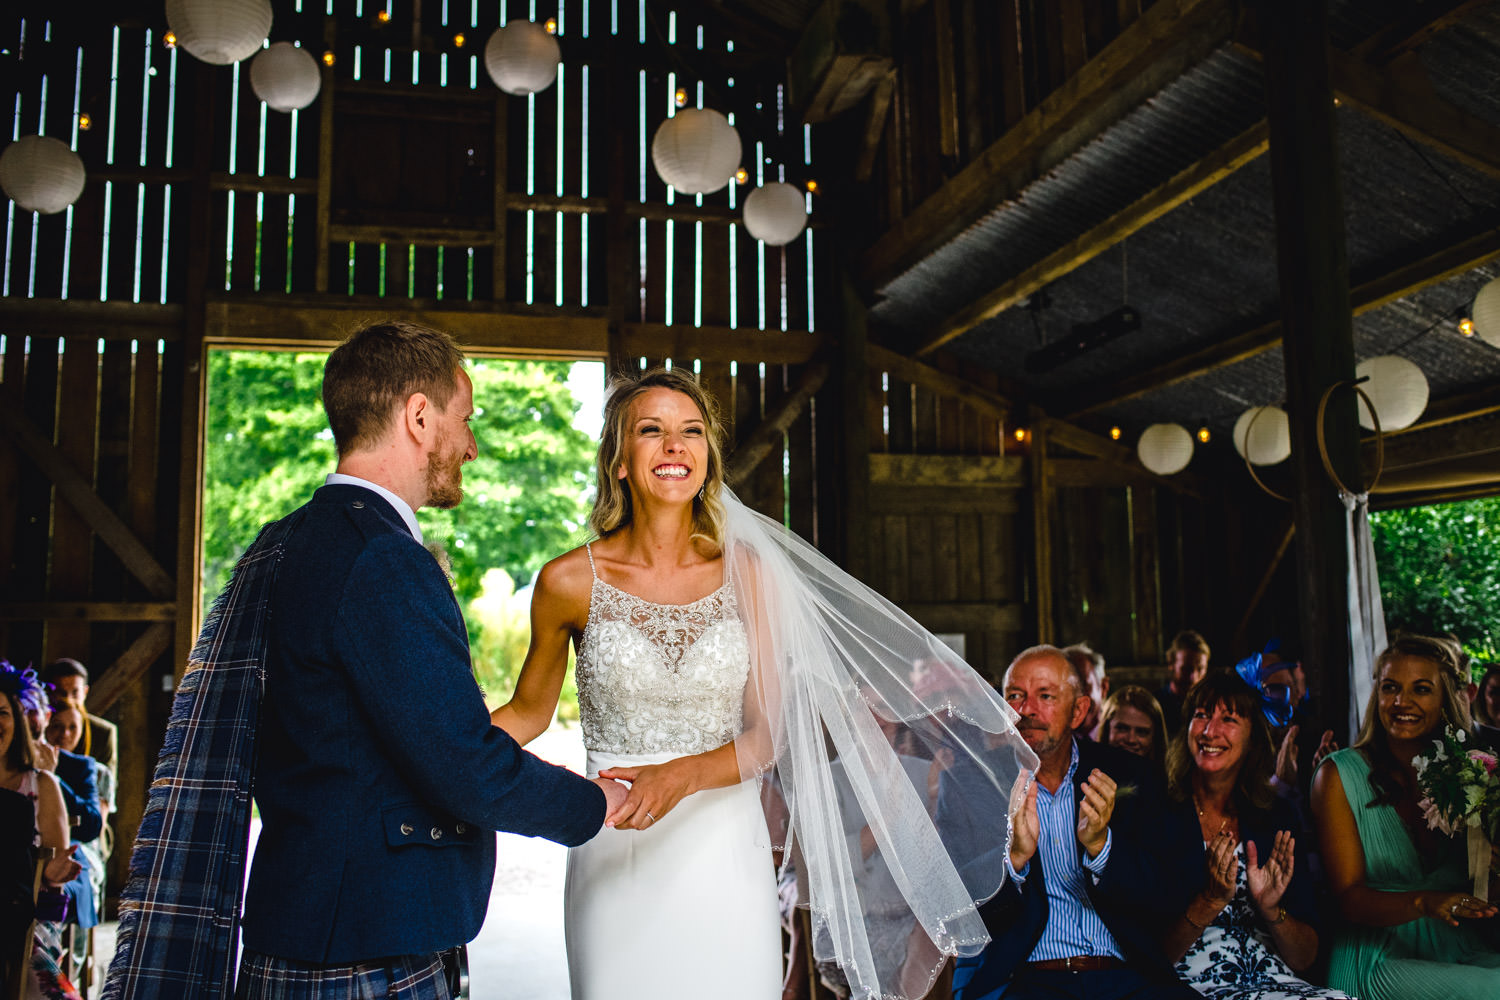 Wedding ceremony at Nancarrow Farm